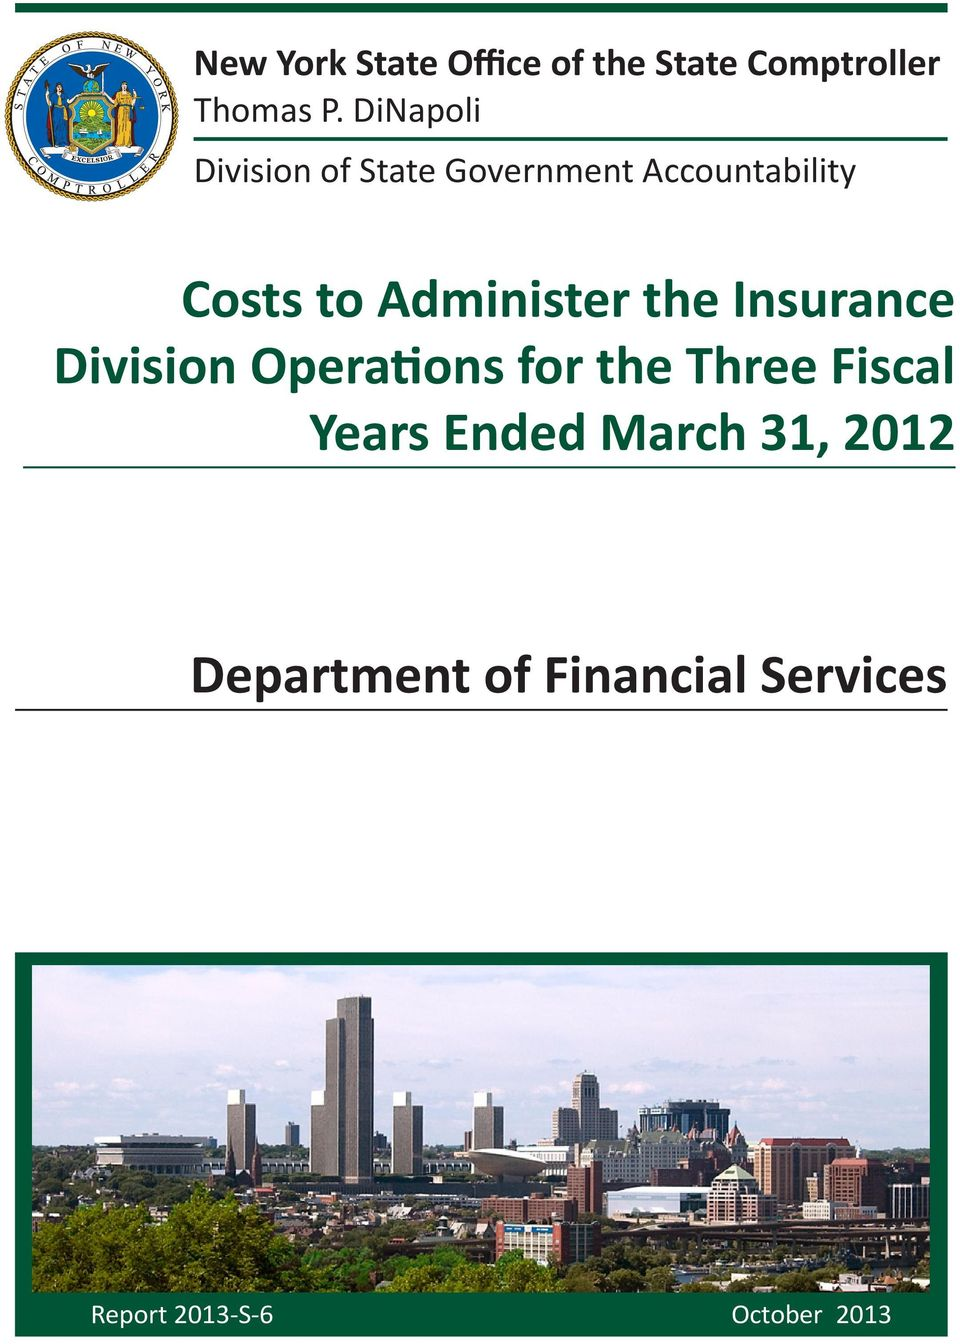 Administer the Insurance Division Operations for the Three Fiscal